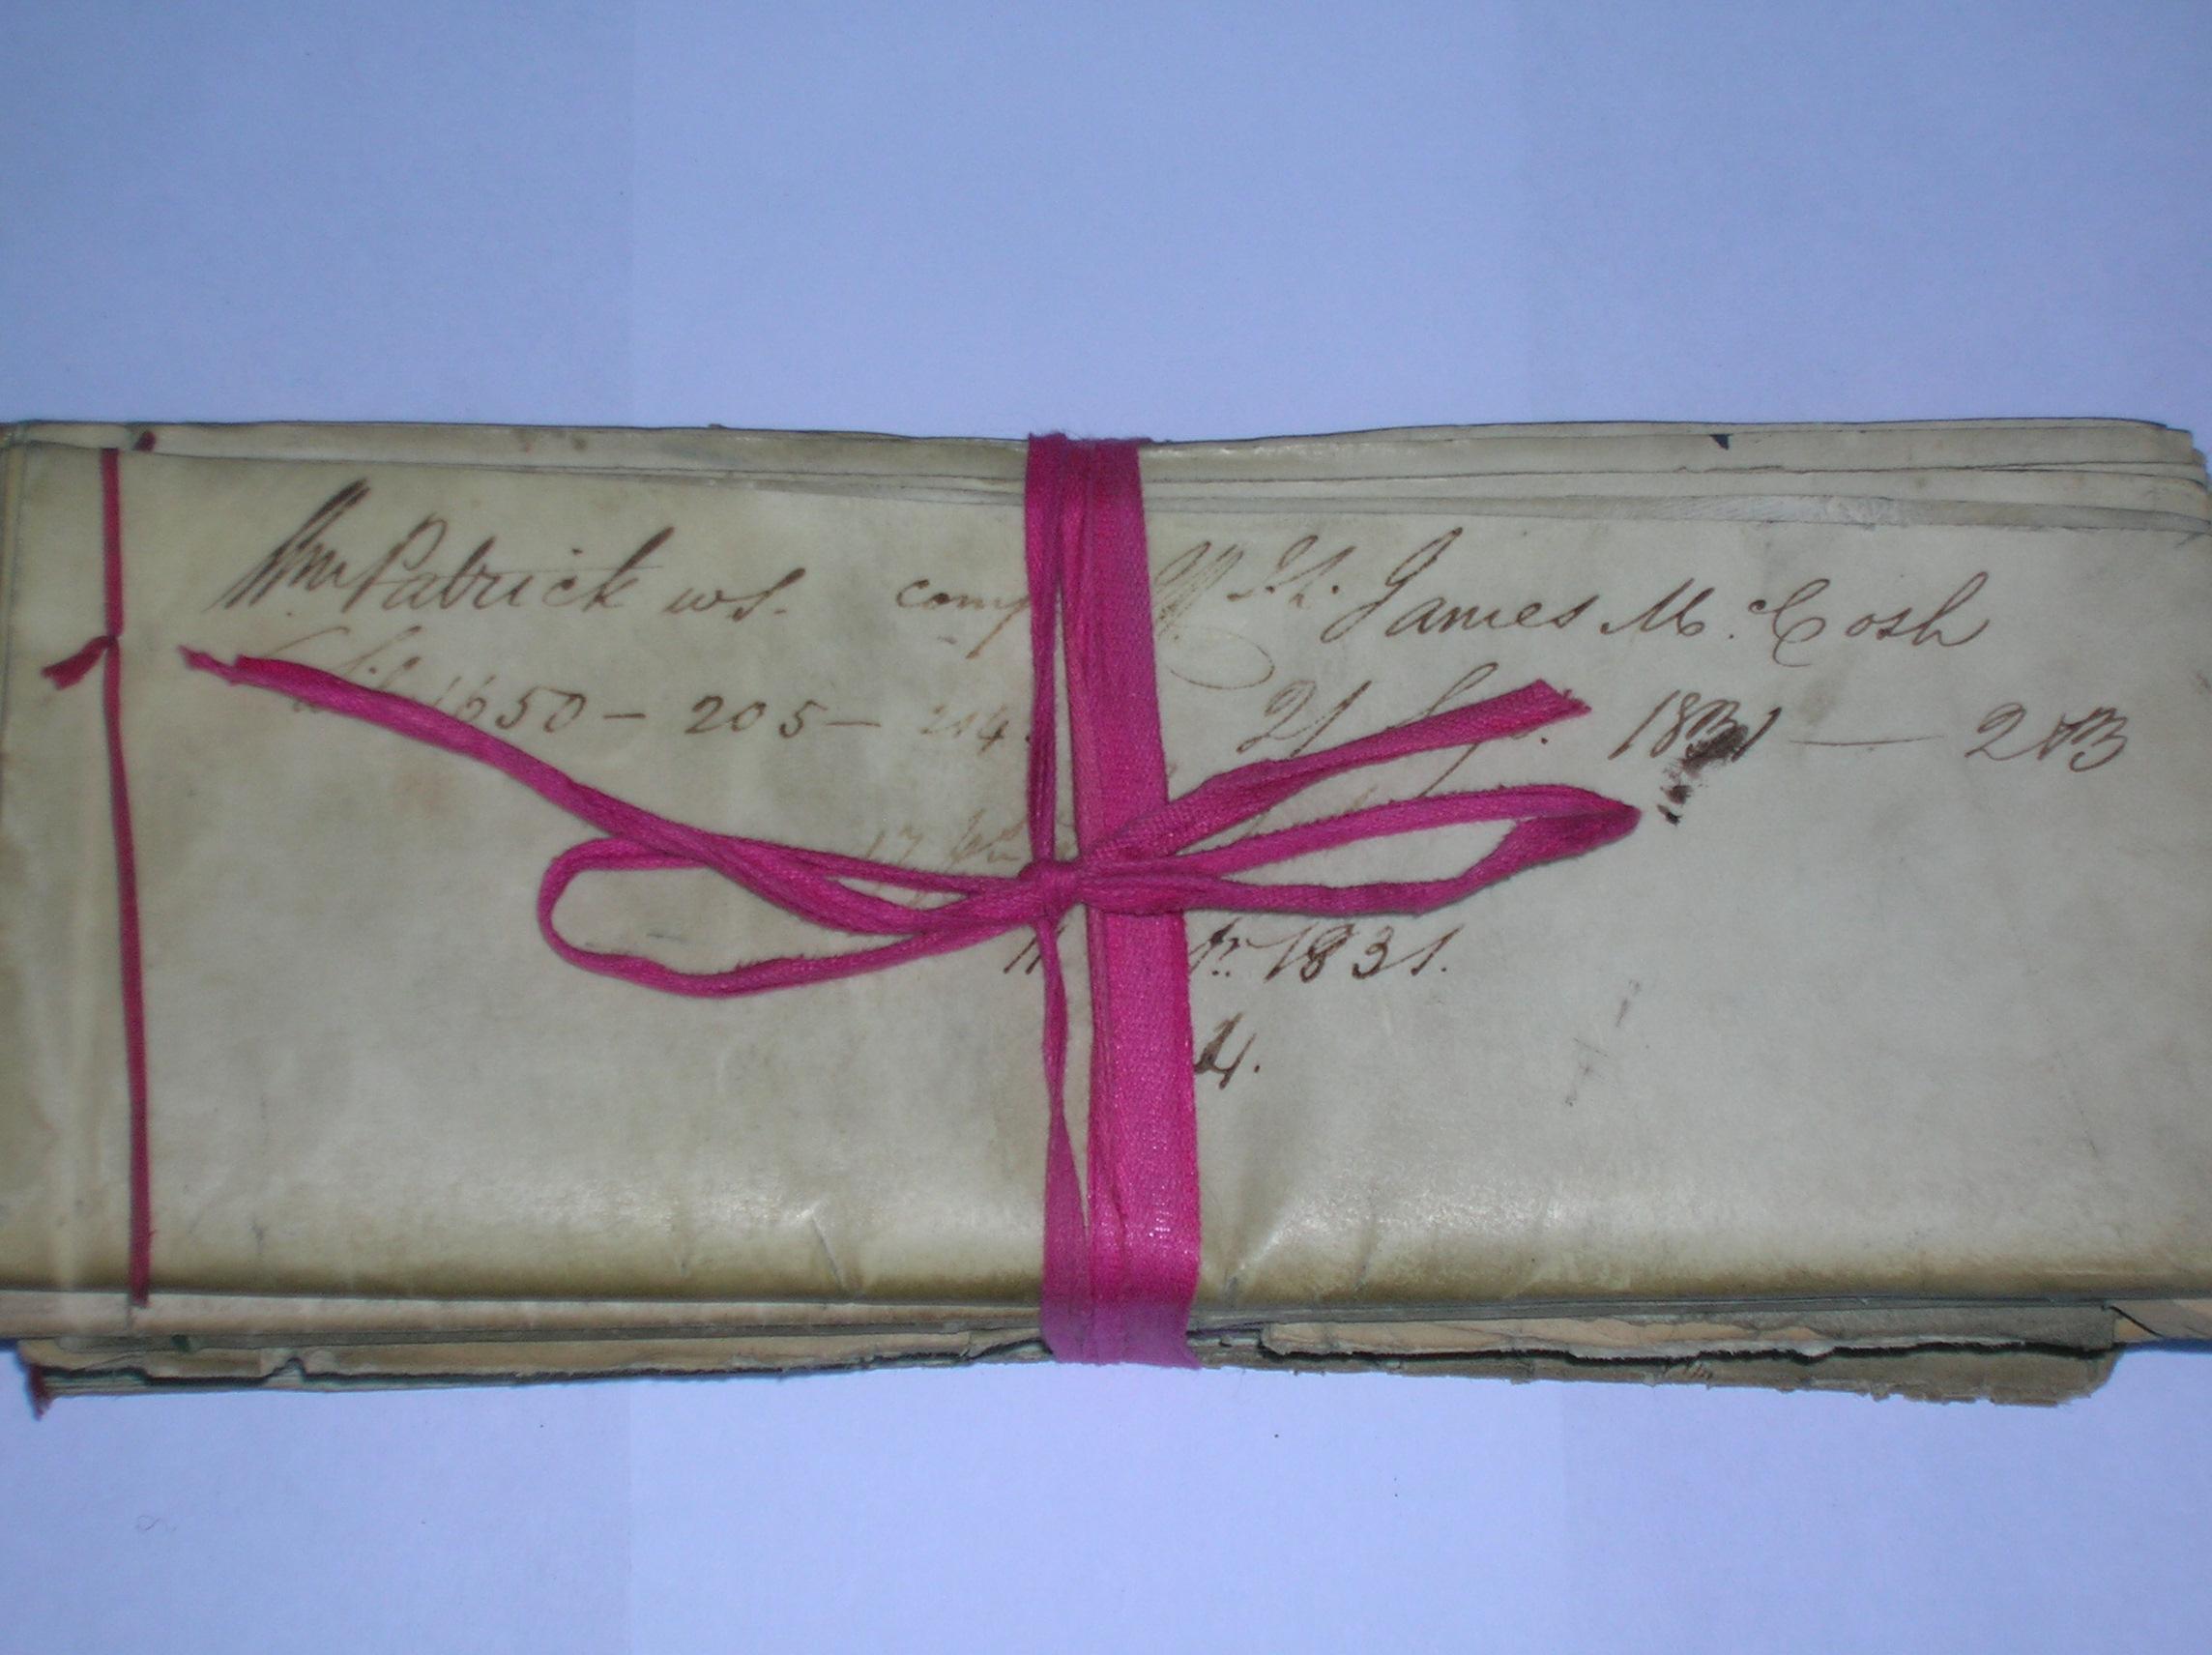 Red tape binds 19th century documents, the origin of phrase